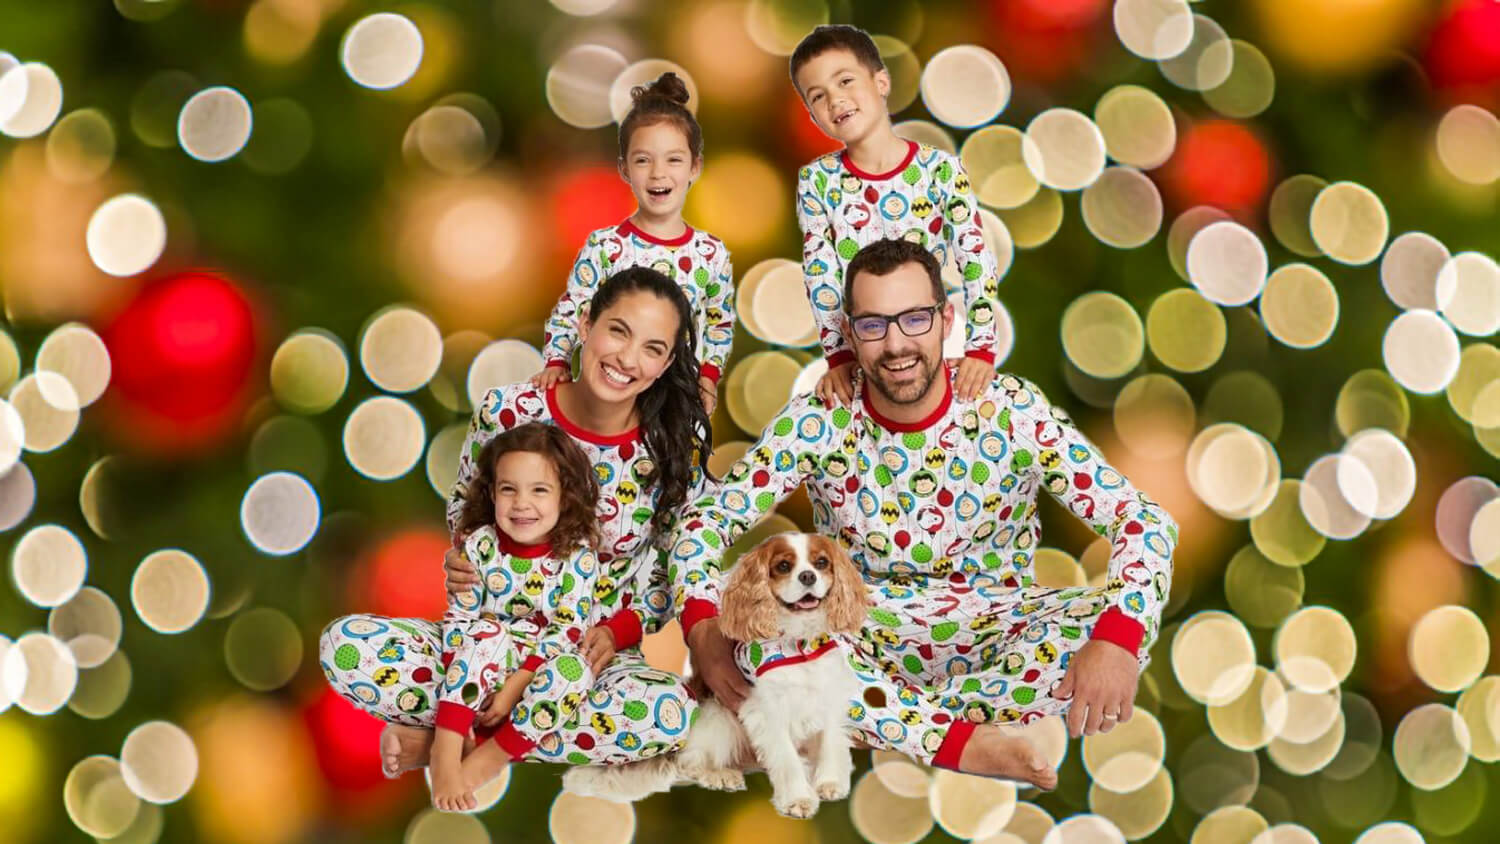 Target Launches Matching Vegan Holiday Pajama Set for Families Who Are Extra About Their Dogs